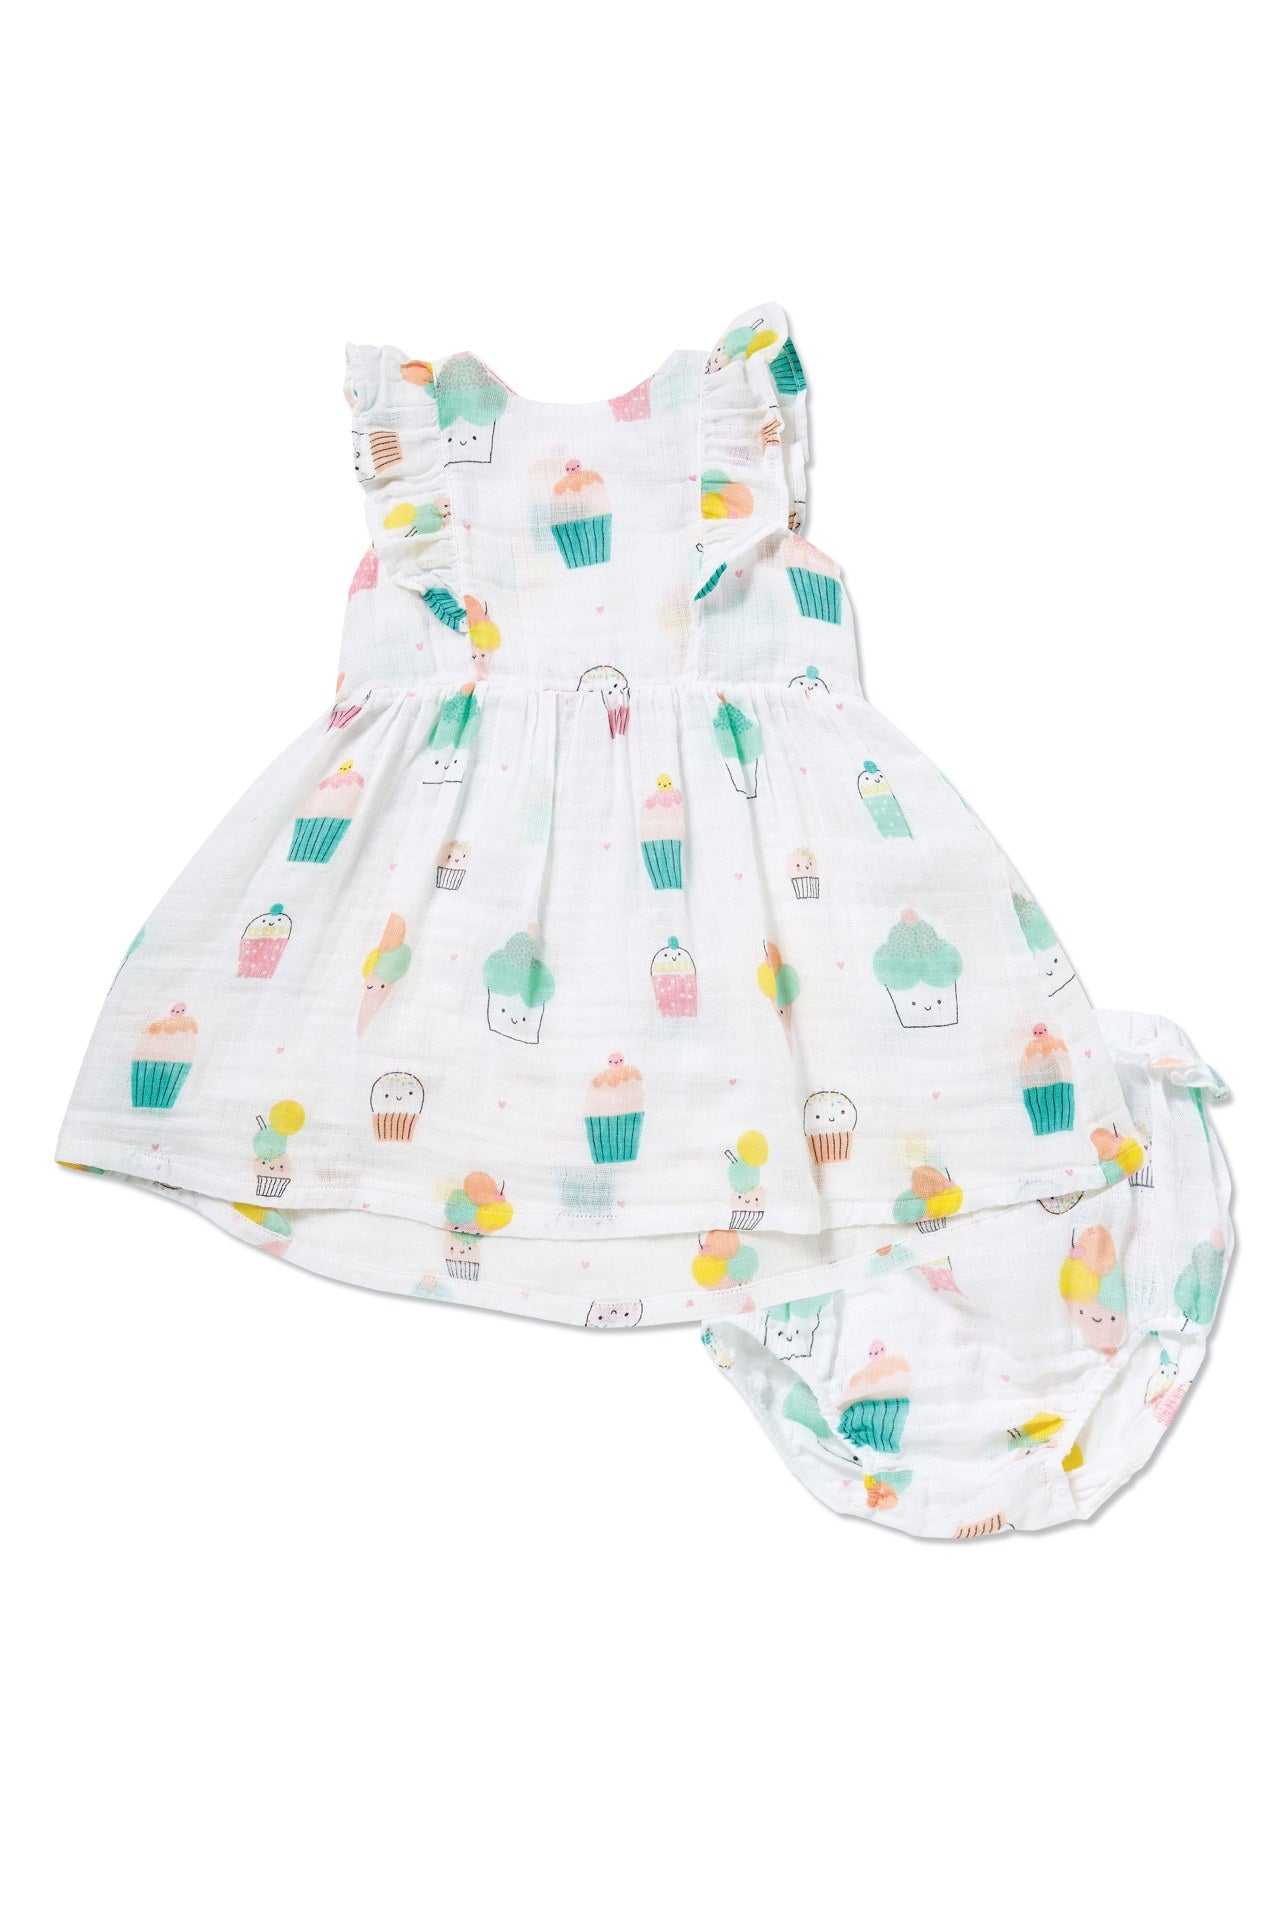 Sprinkles Ruffle Sundress - Little Owly